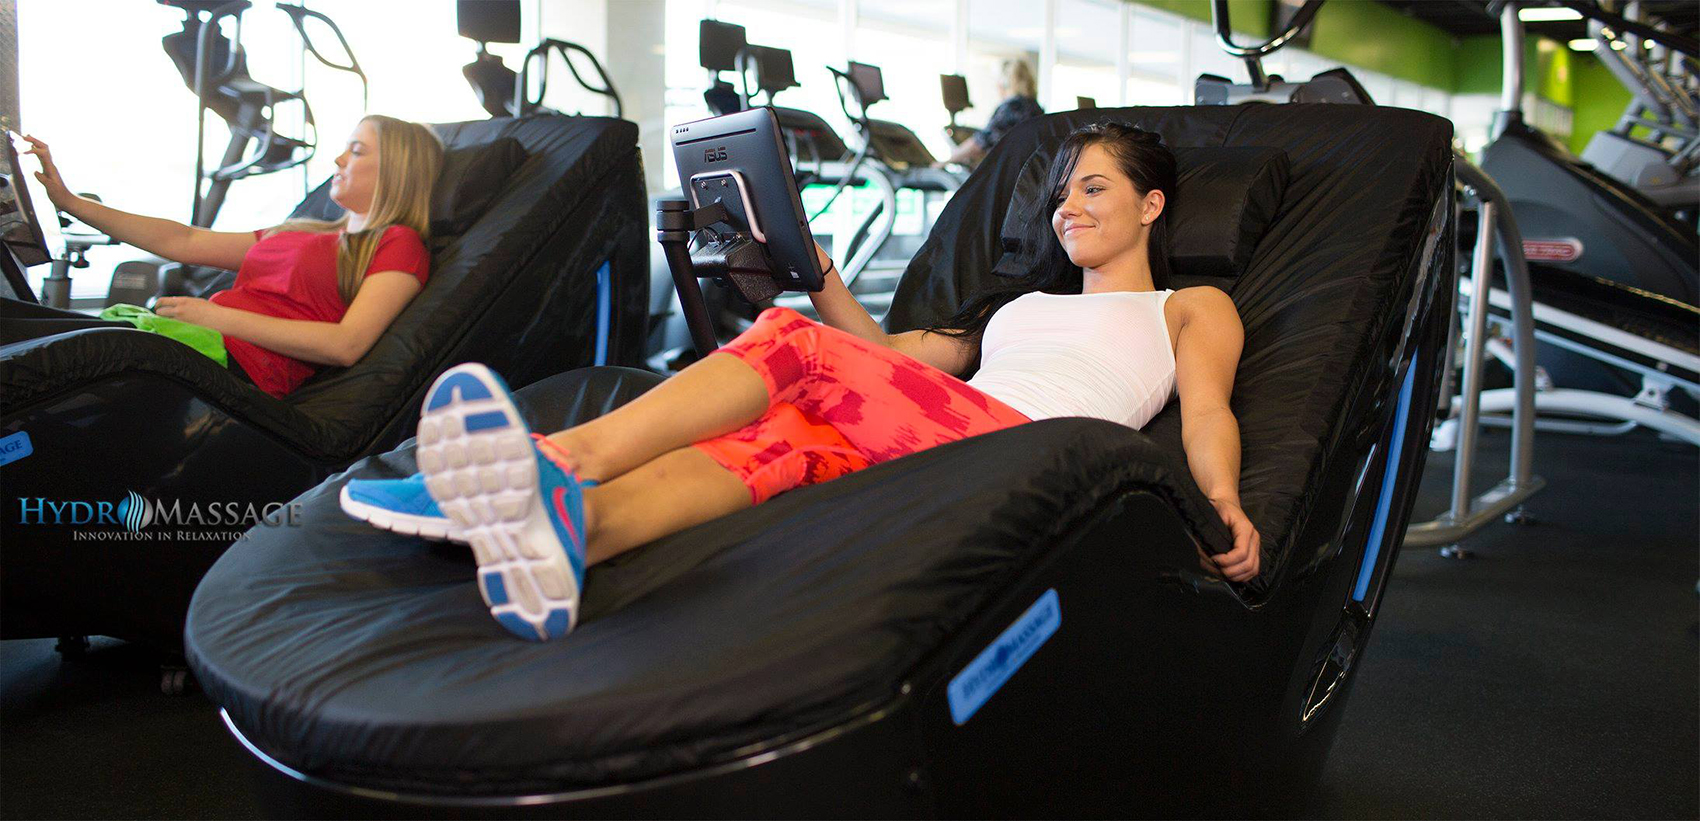 5 Surprising Benefits of Hydromassage You Didnt Know